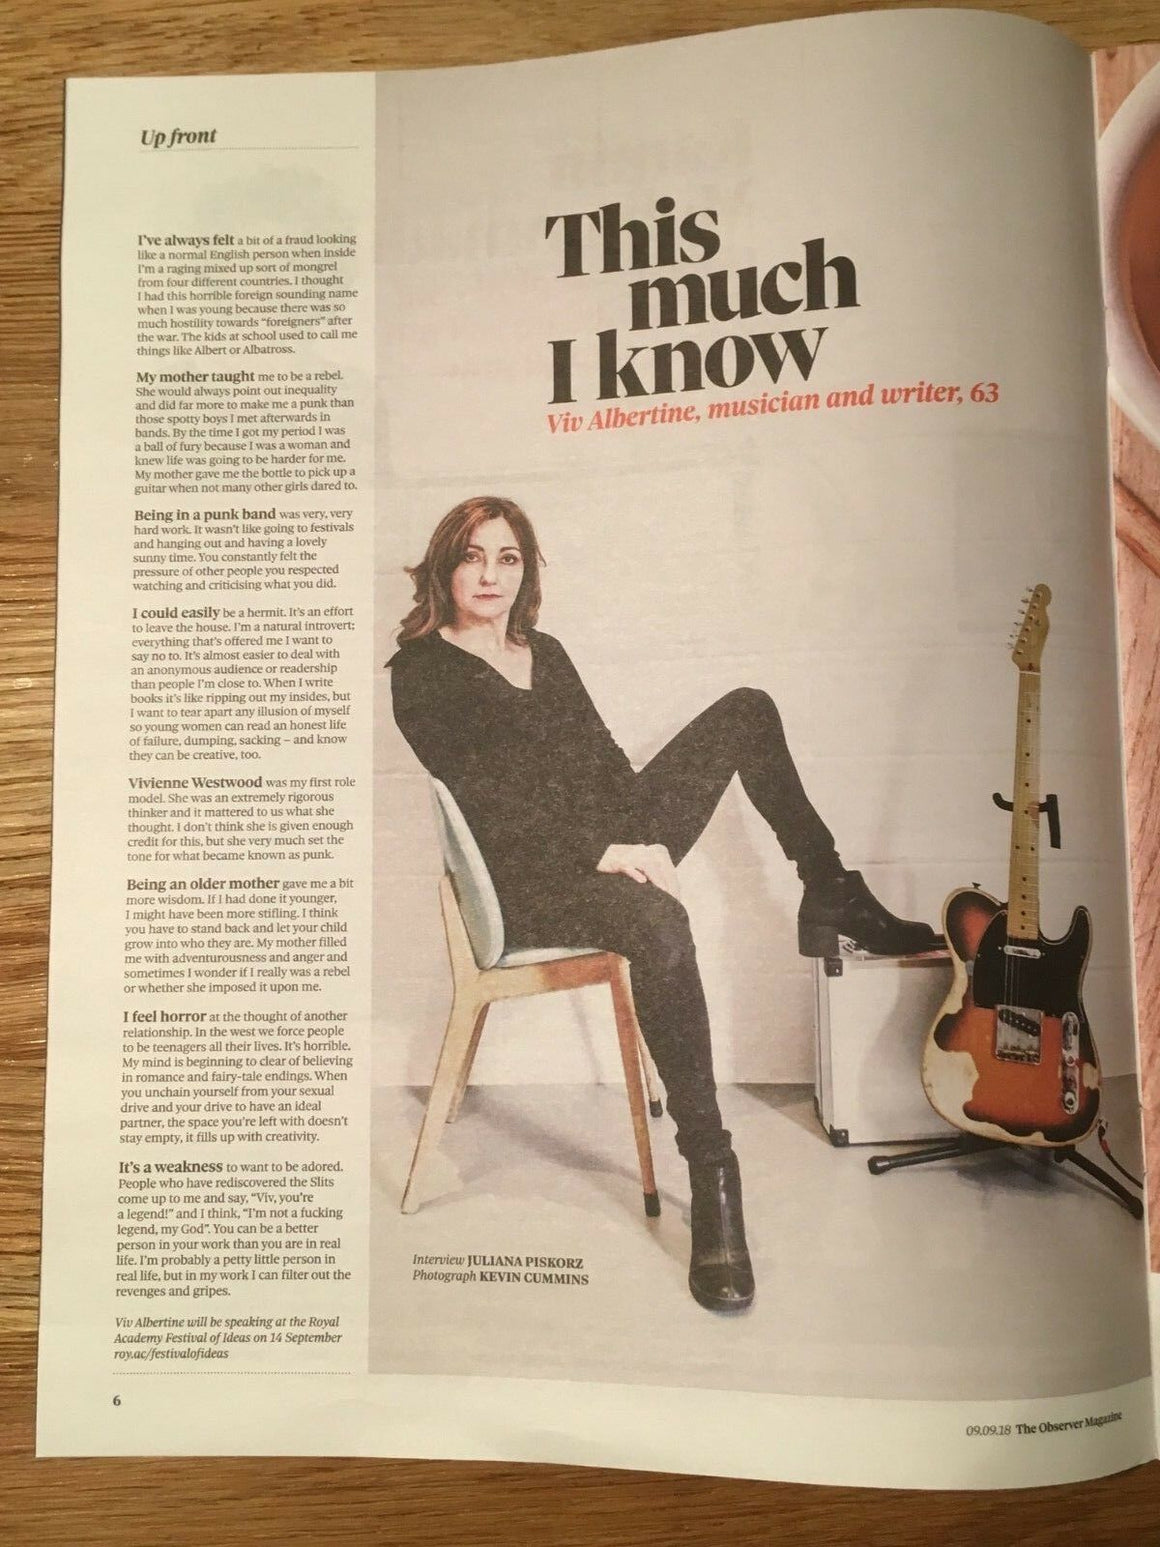 UK Observer Magazine September 2018: VIV ALBERTINE ## IMRAN AMED